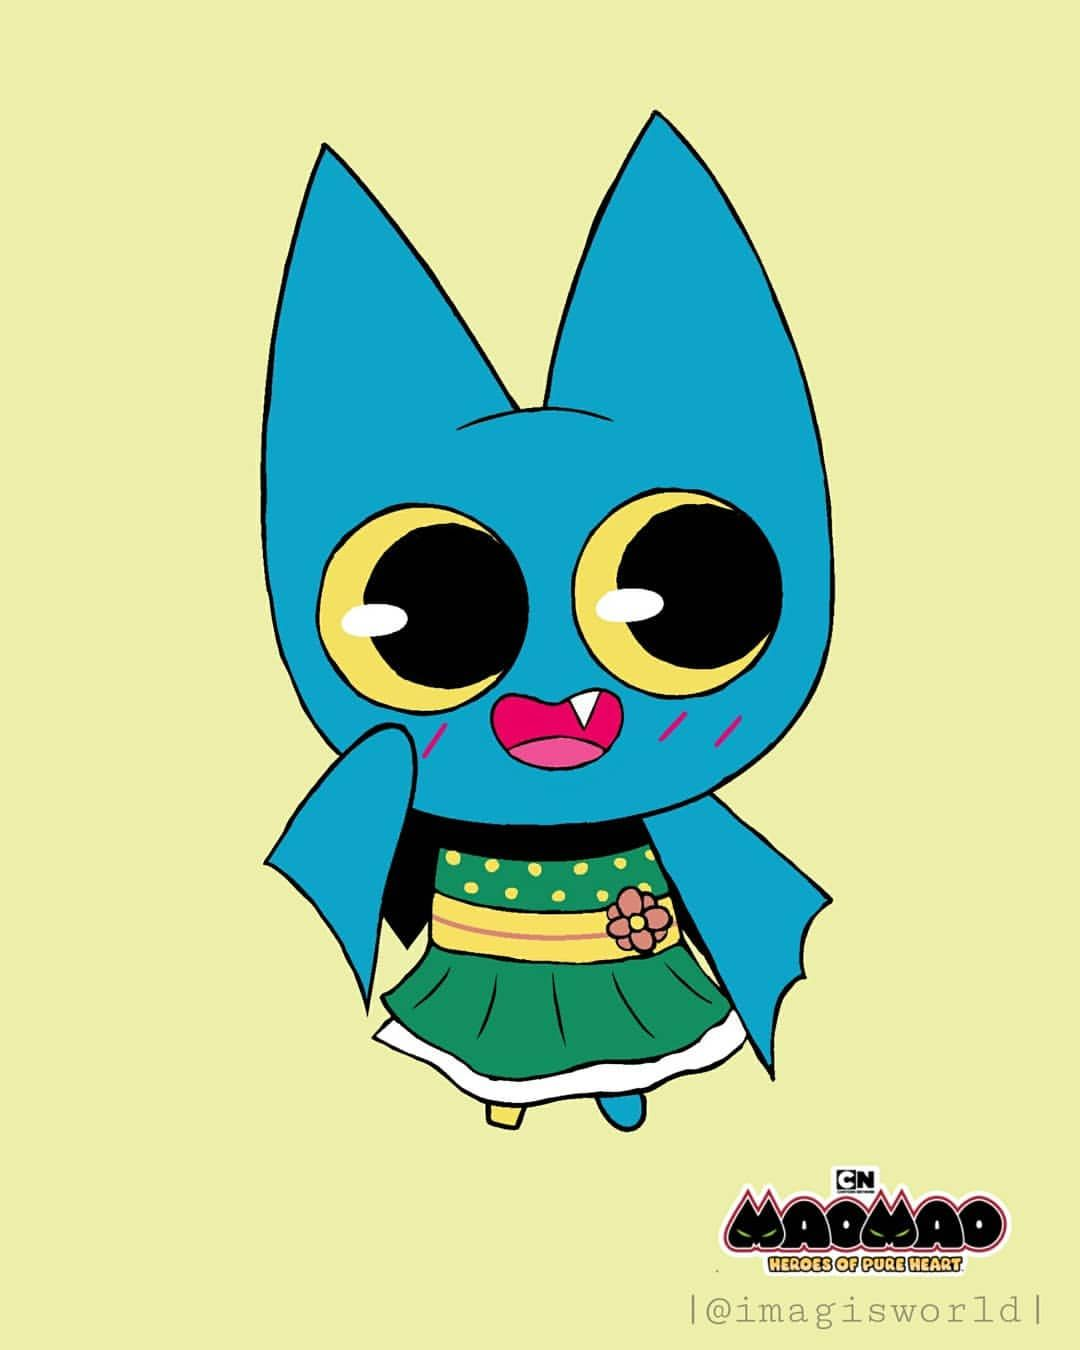 The Adorable Bat Adorabat Wallpaper You Can Download It In My Tumblr Link In Bio Maomaoheroesofpureheart Ad Cartoon Network Nickelodeon Cartoon You can also upload and share your favorite dorohedoro wallpapers. the adorable bat adorabat wallpaper you